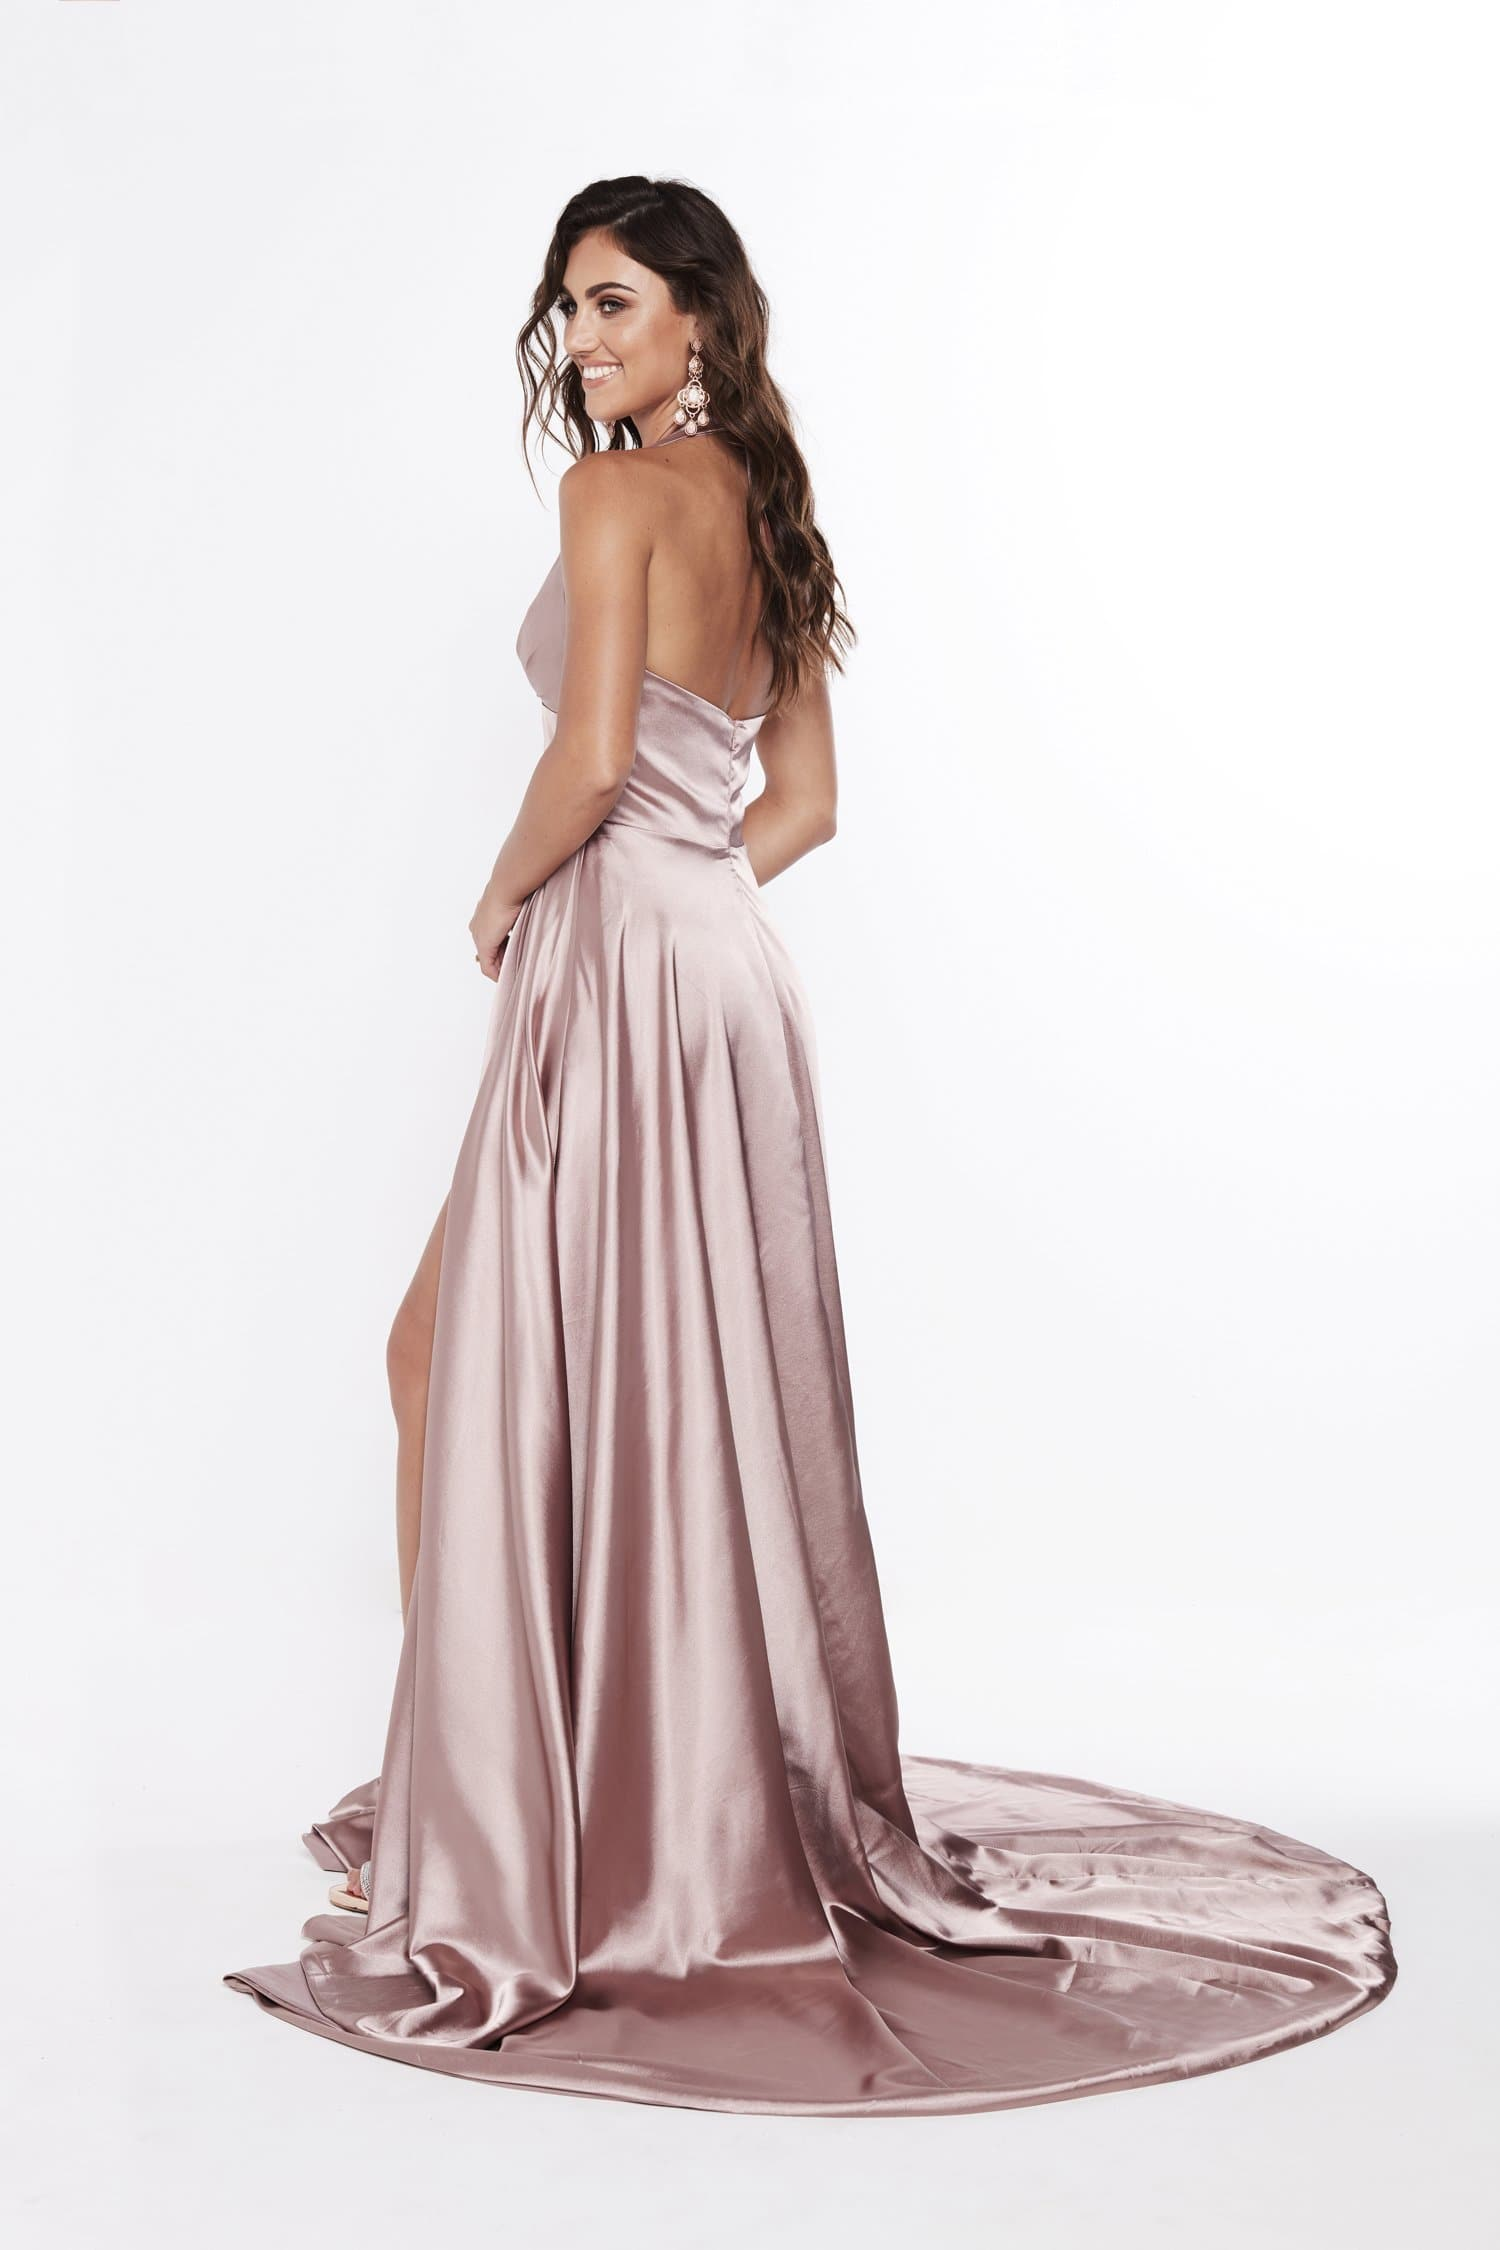 e340f578aae7c ... A&N Abigail - Mauve Halter Neck Dress with Hidden Slit and Low Back